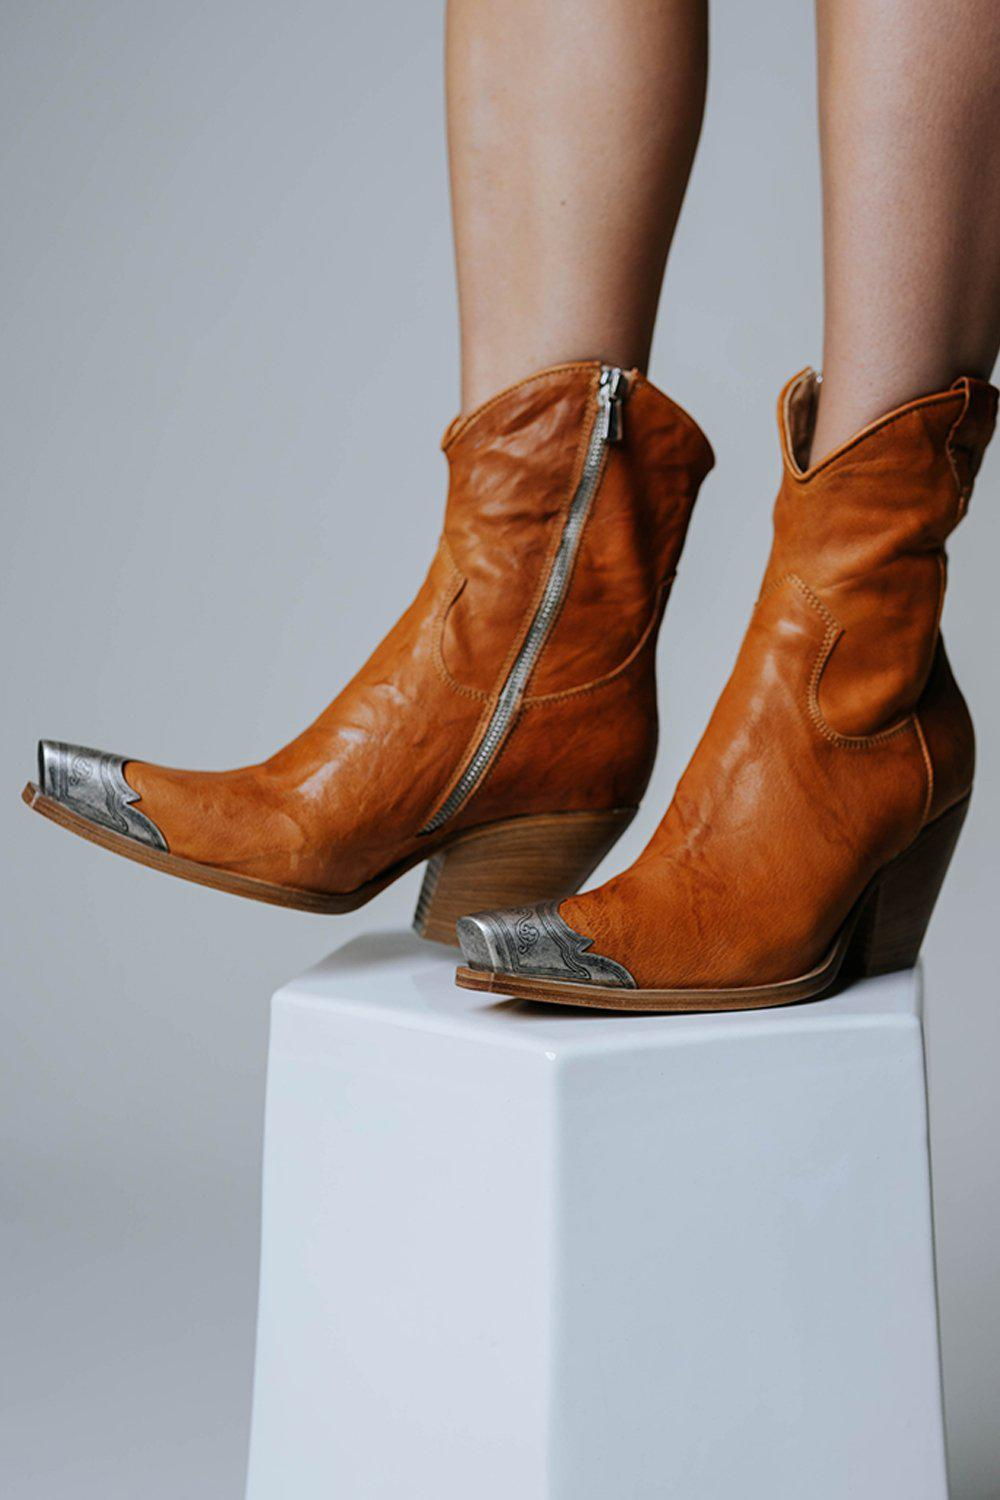 Free People Brayden Western Boot in Tan-Shoes-n/a-36-Clad & Cloth